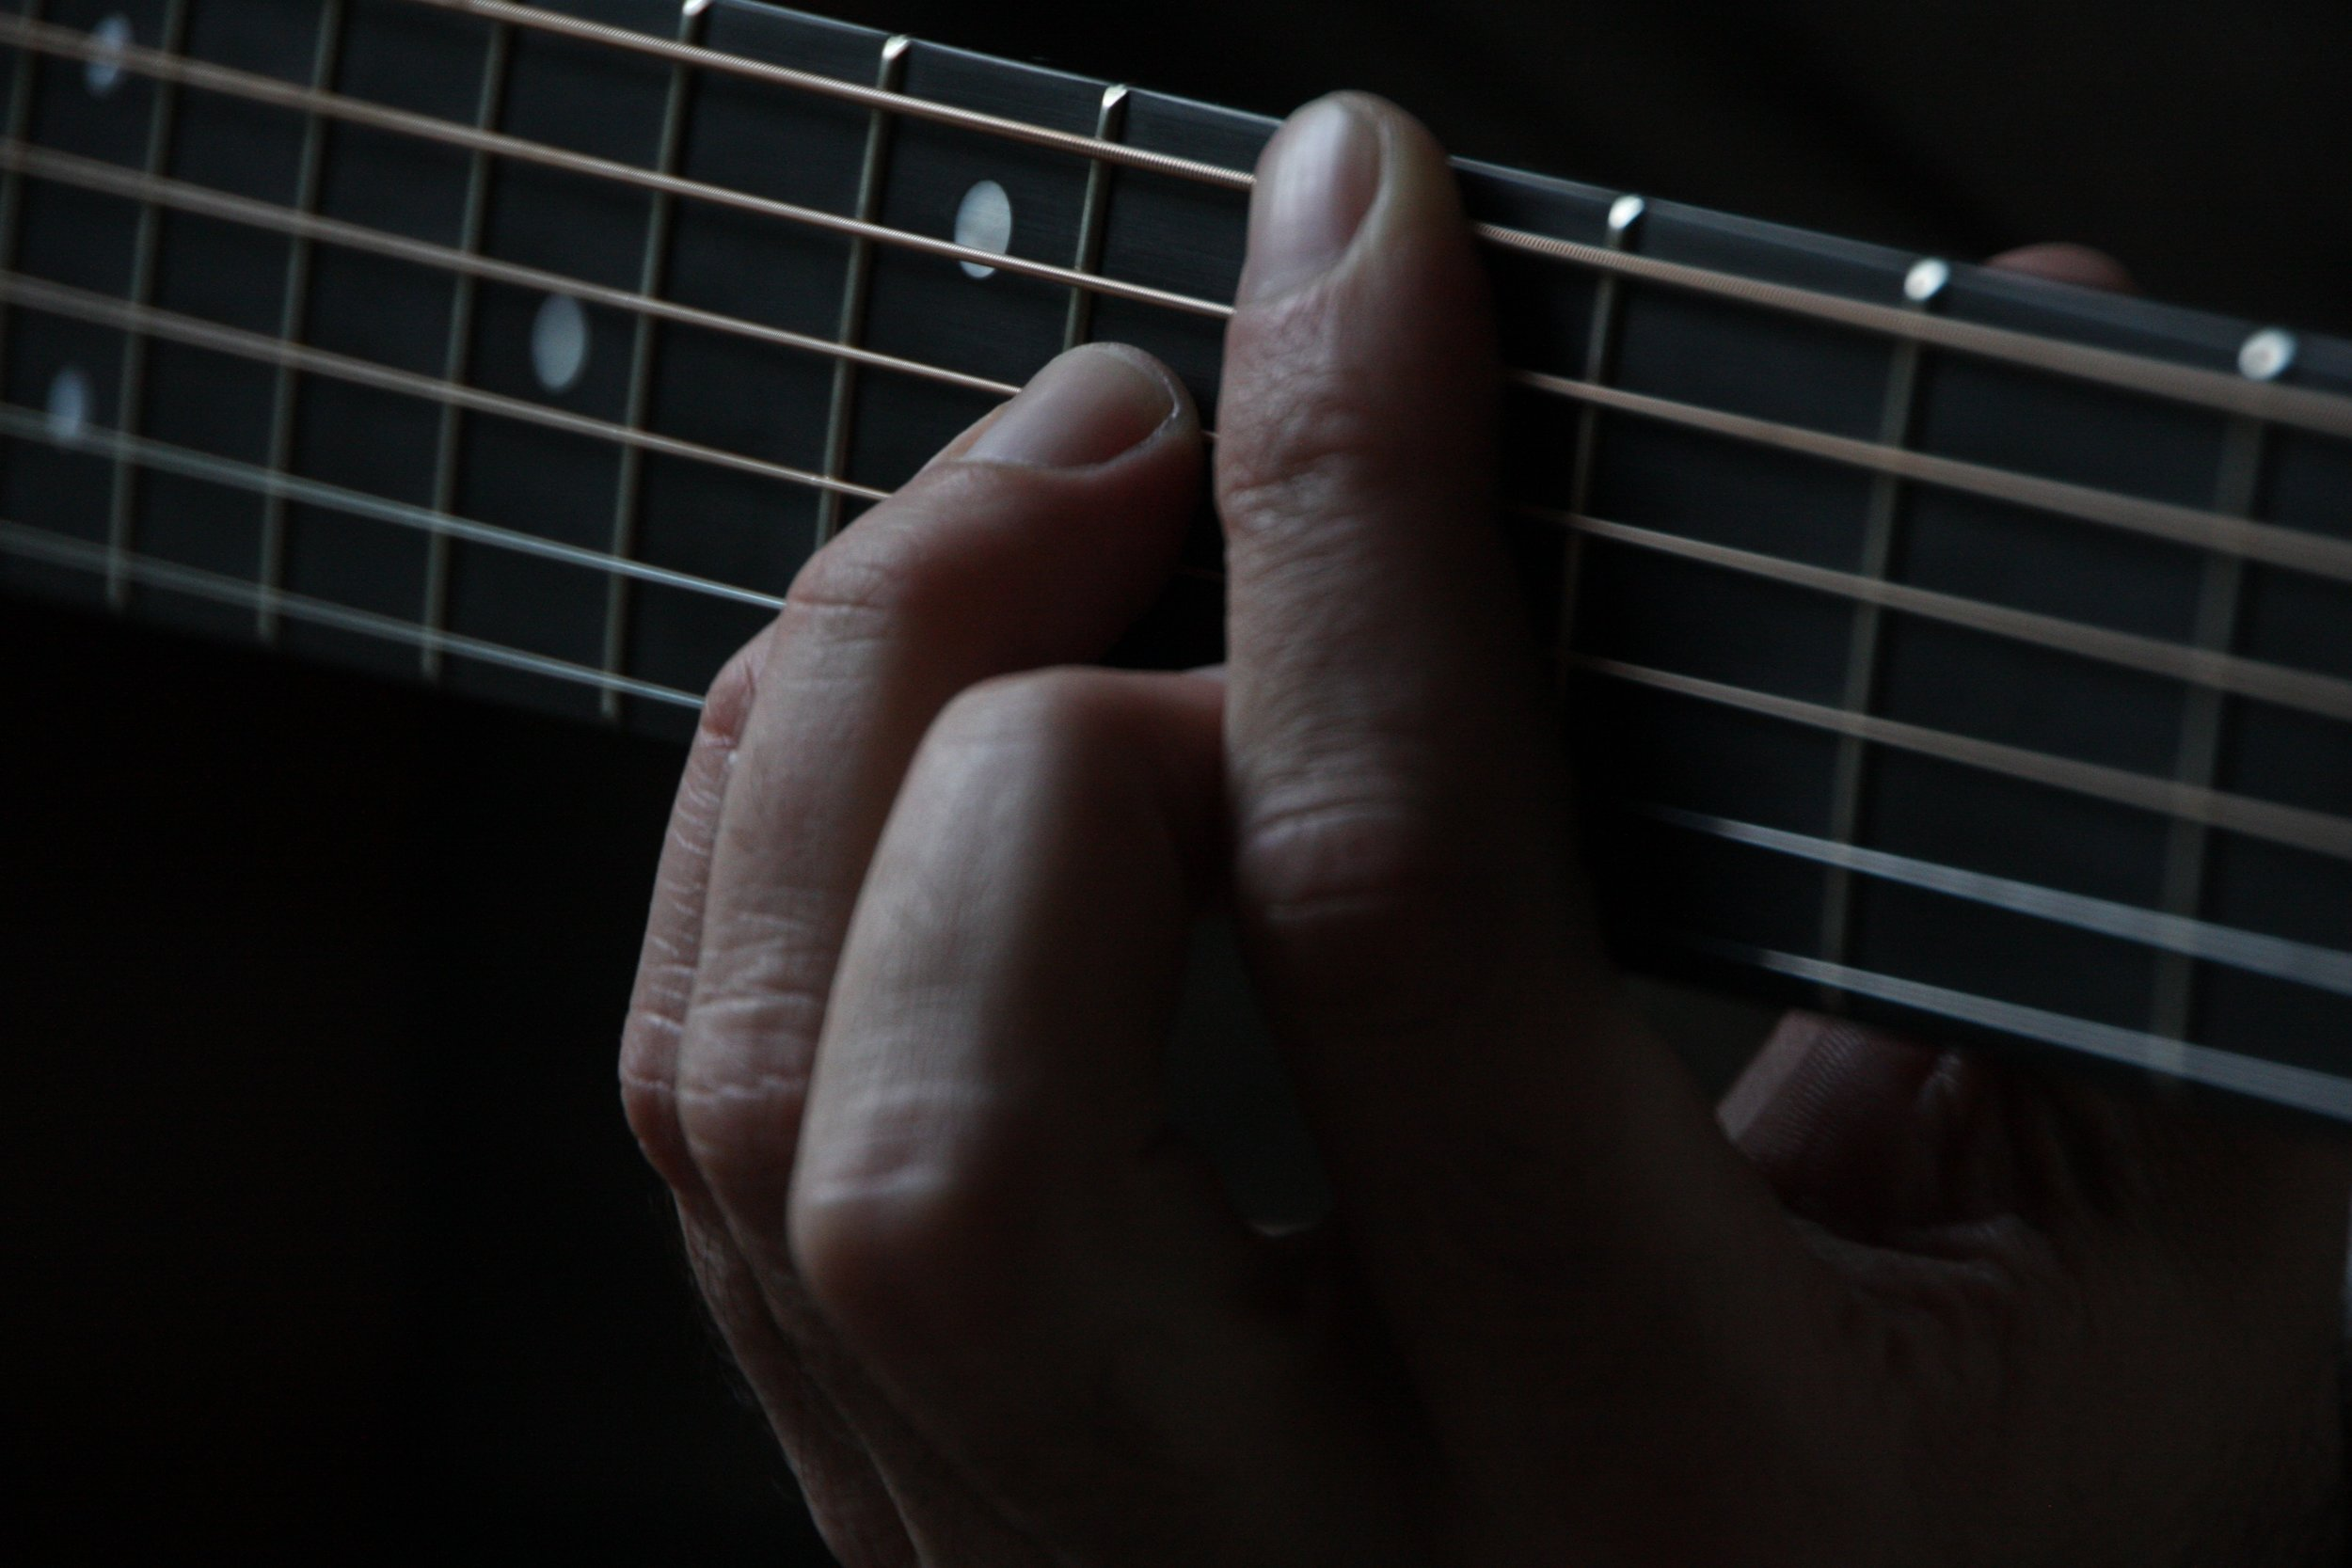 Playing the guitar, photo by Scott Gruber on Unsplash